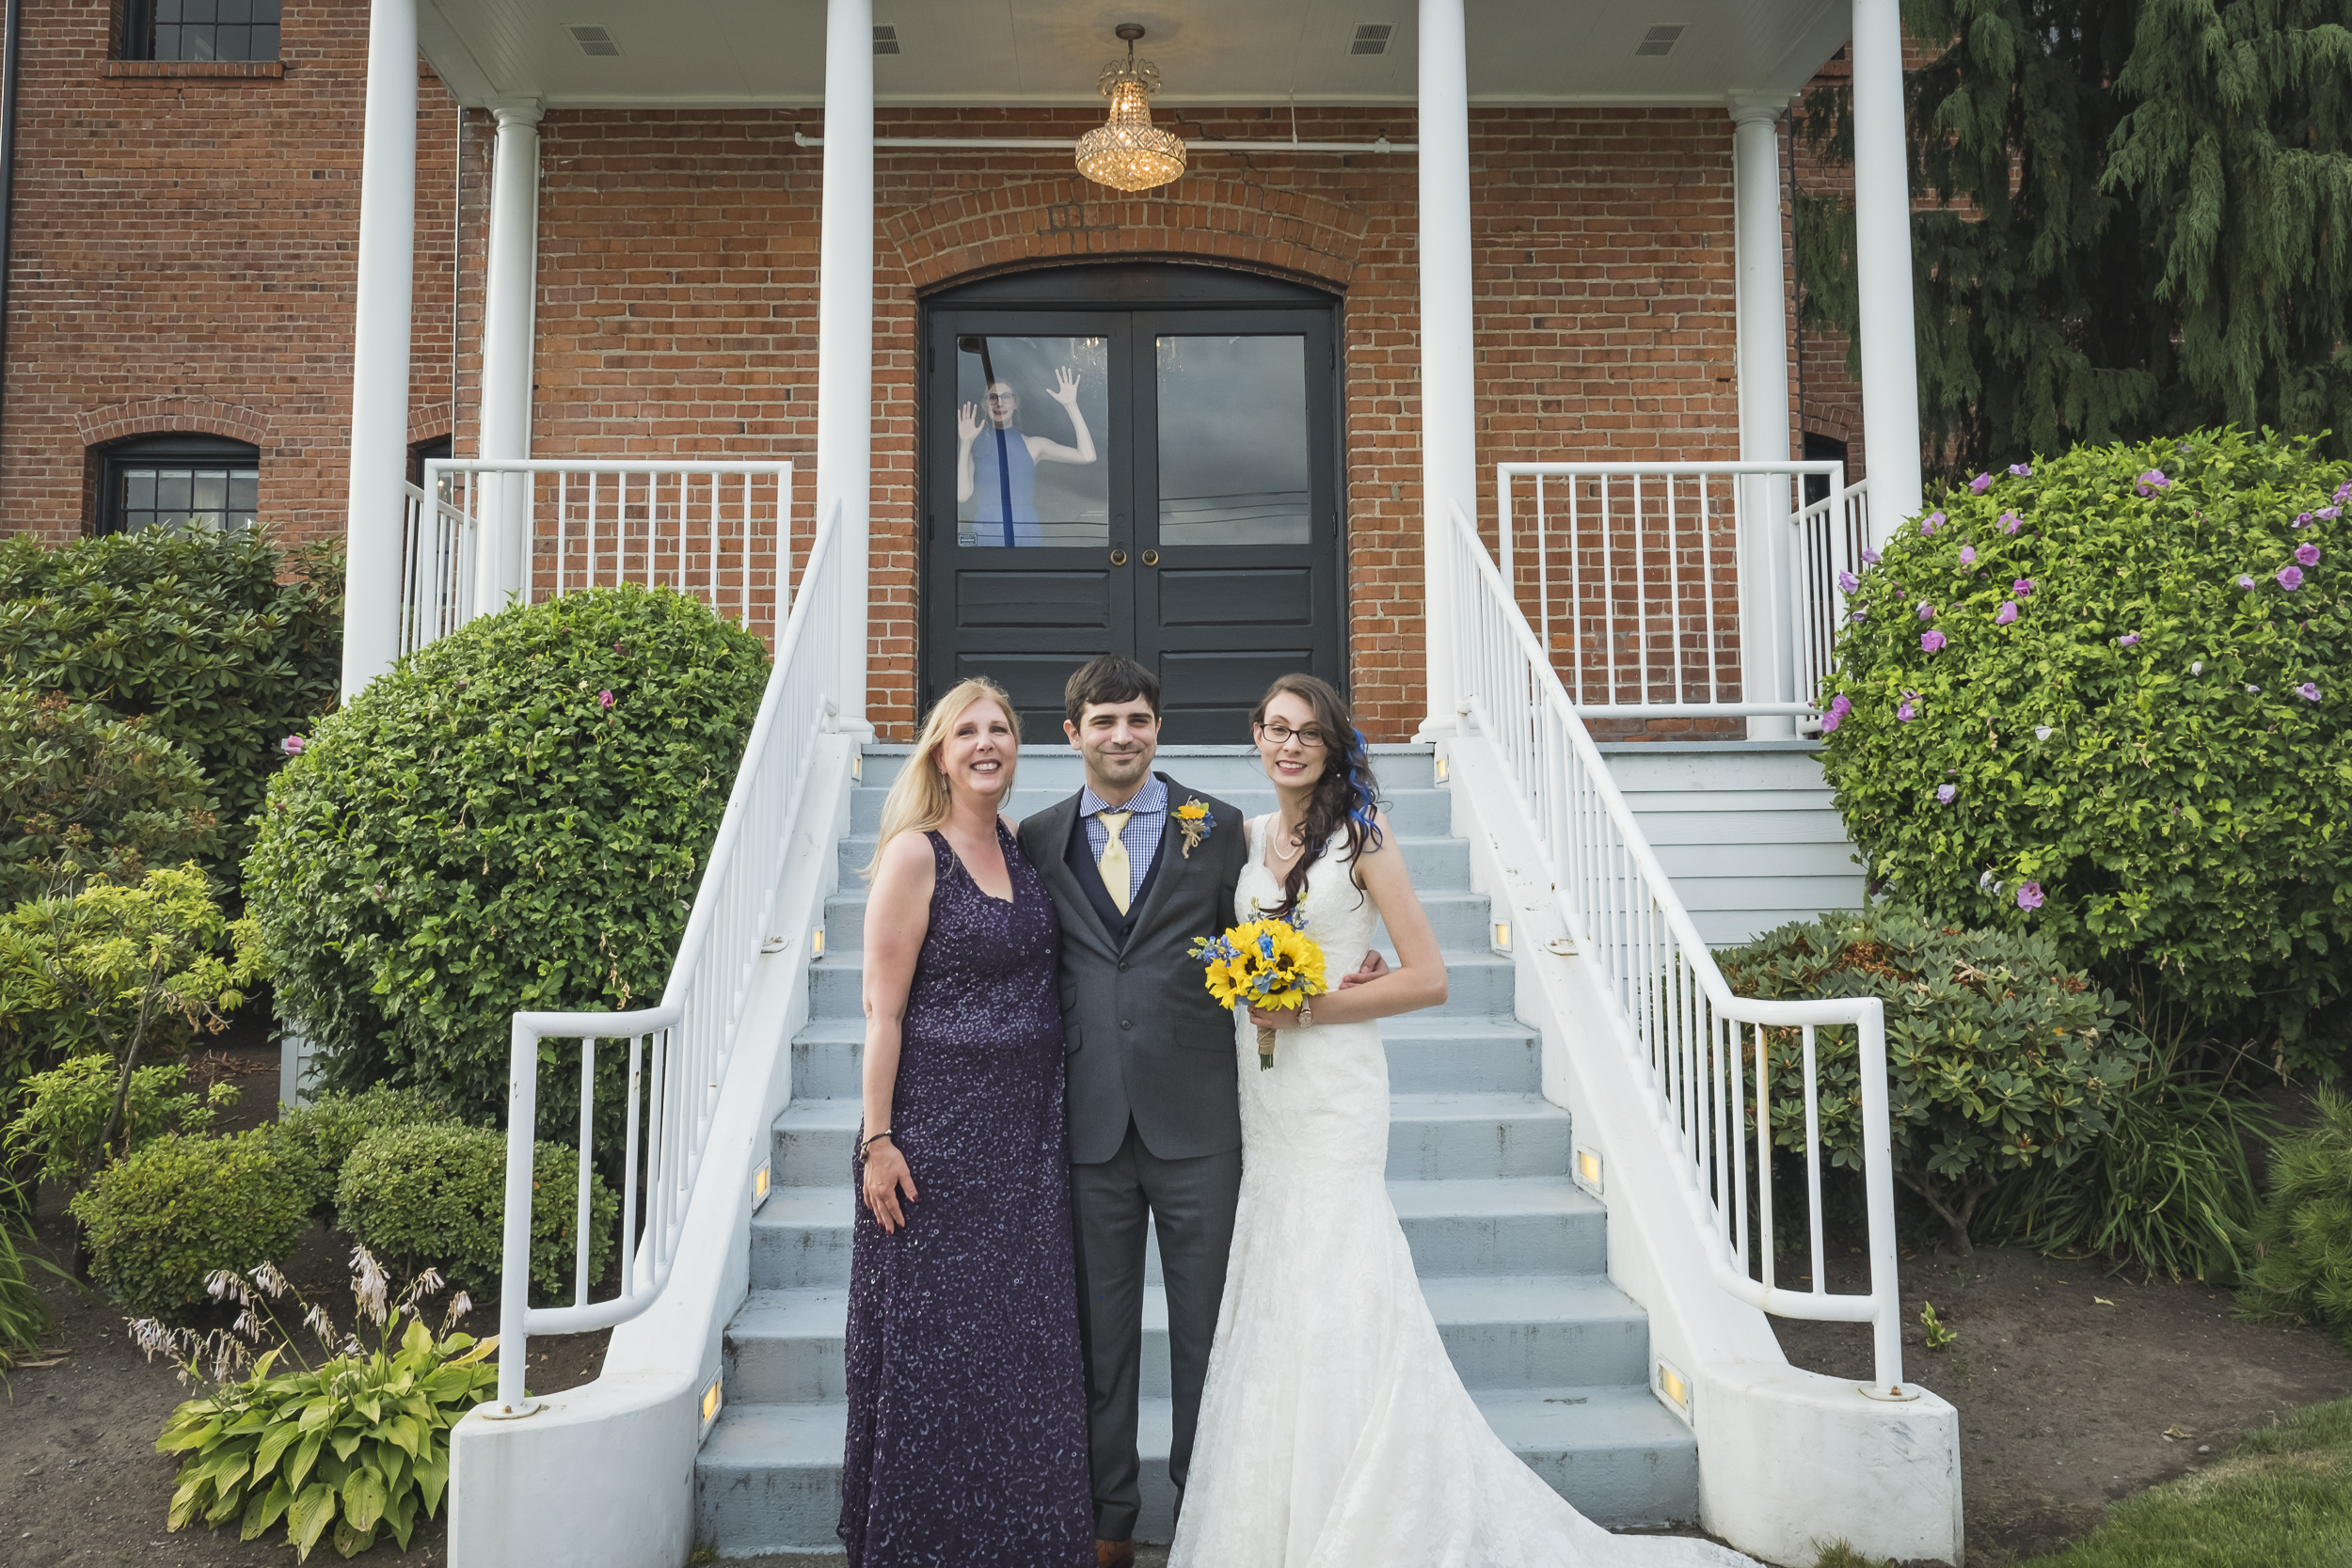 Heather and Adam Wedding - Michael Sladek Photography.jpg